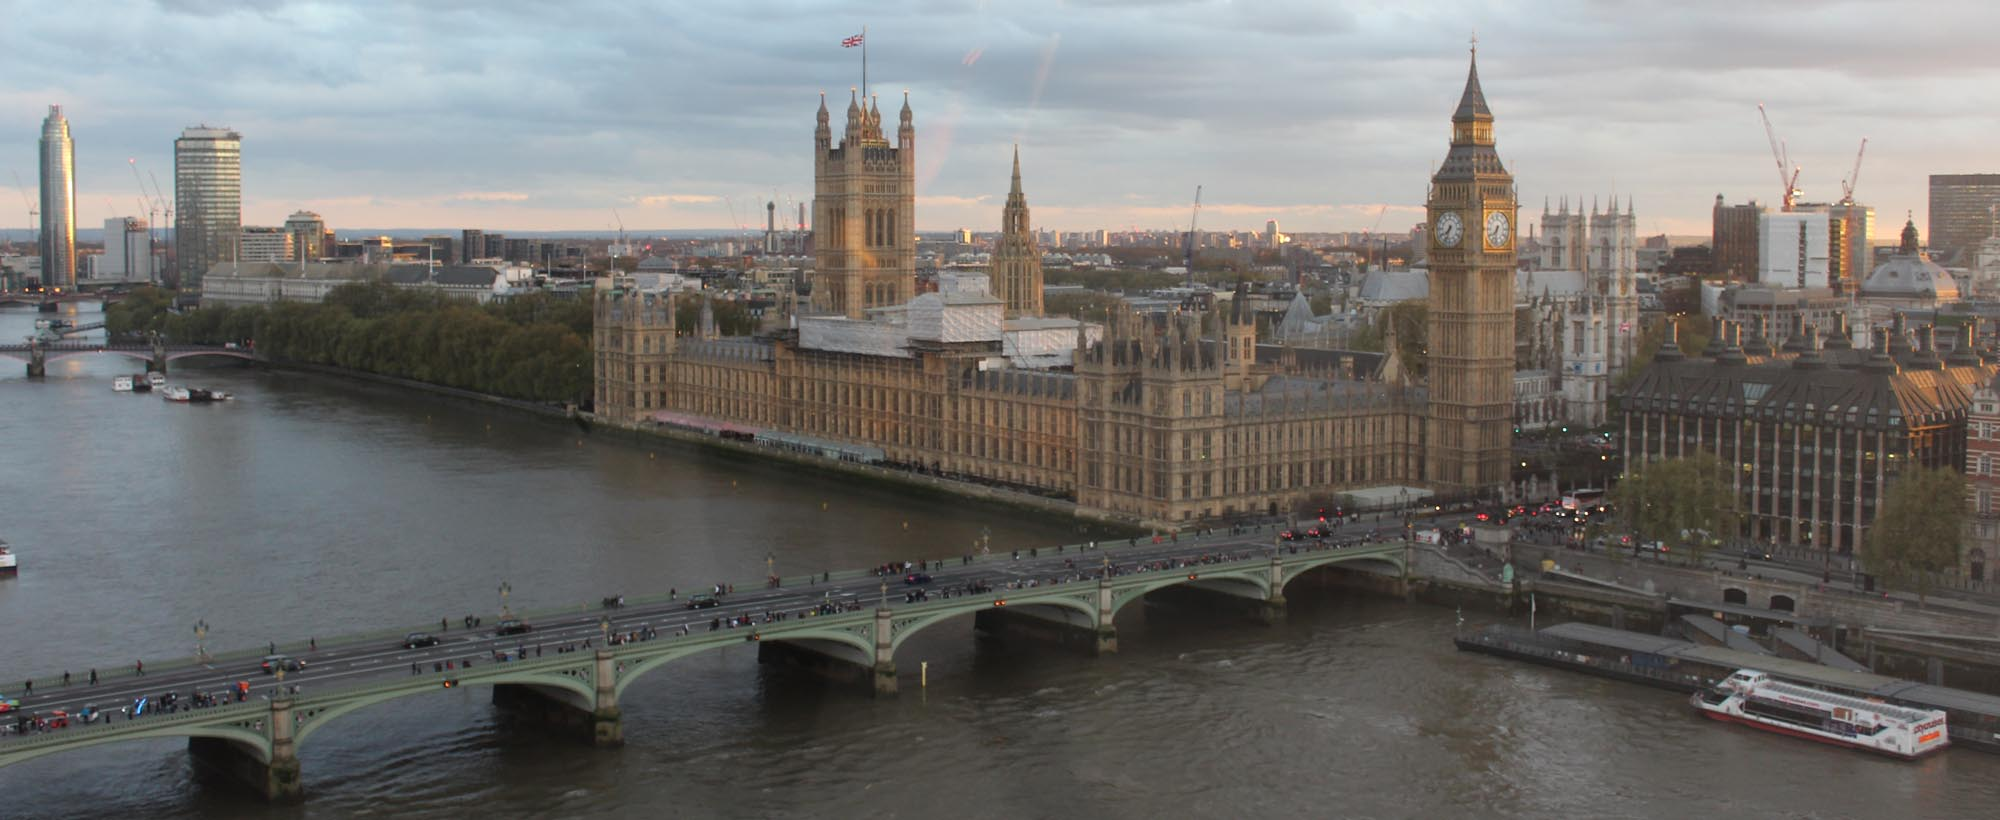 The view of London and Westminster from the Eye